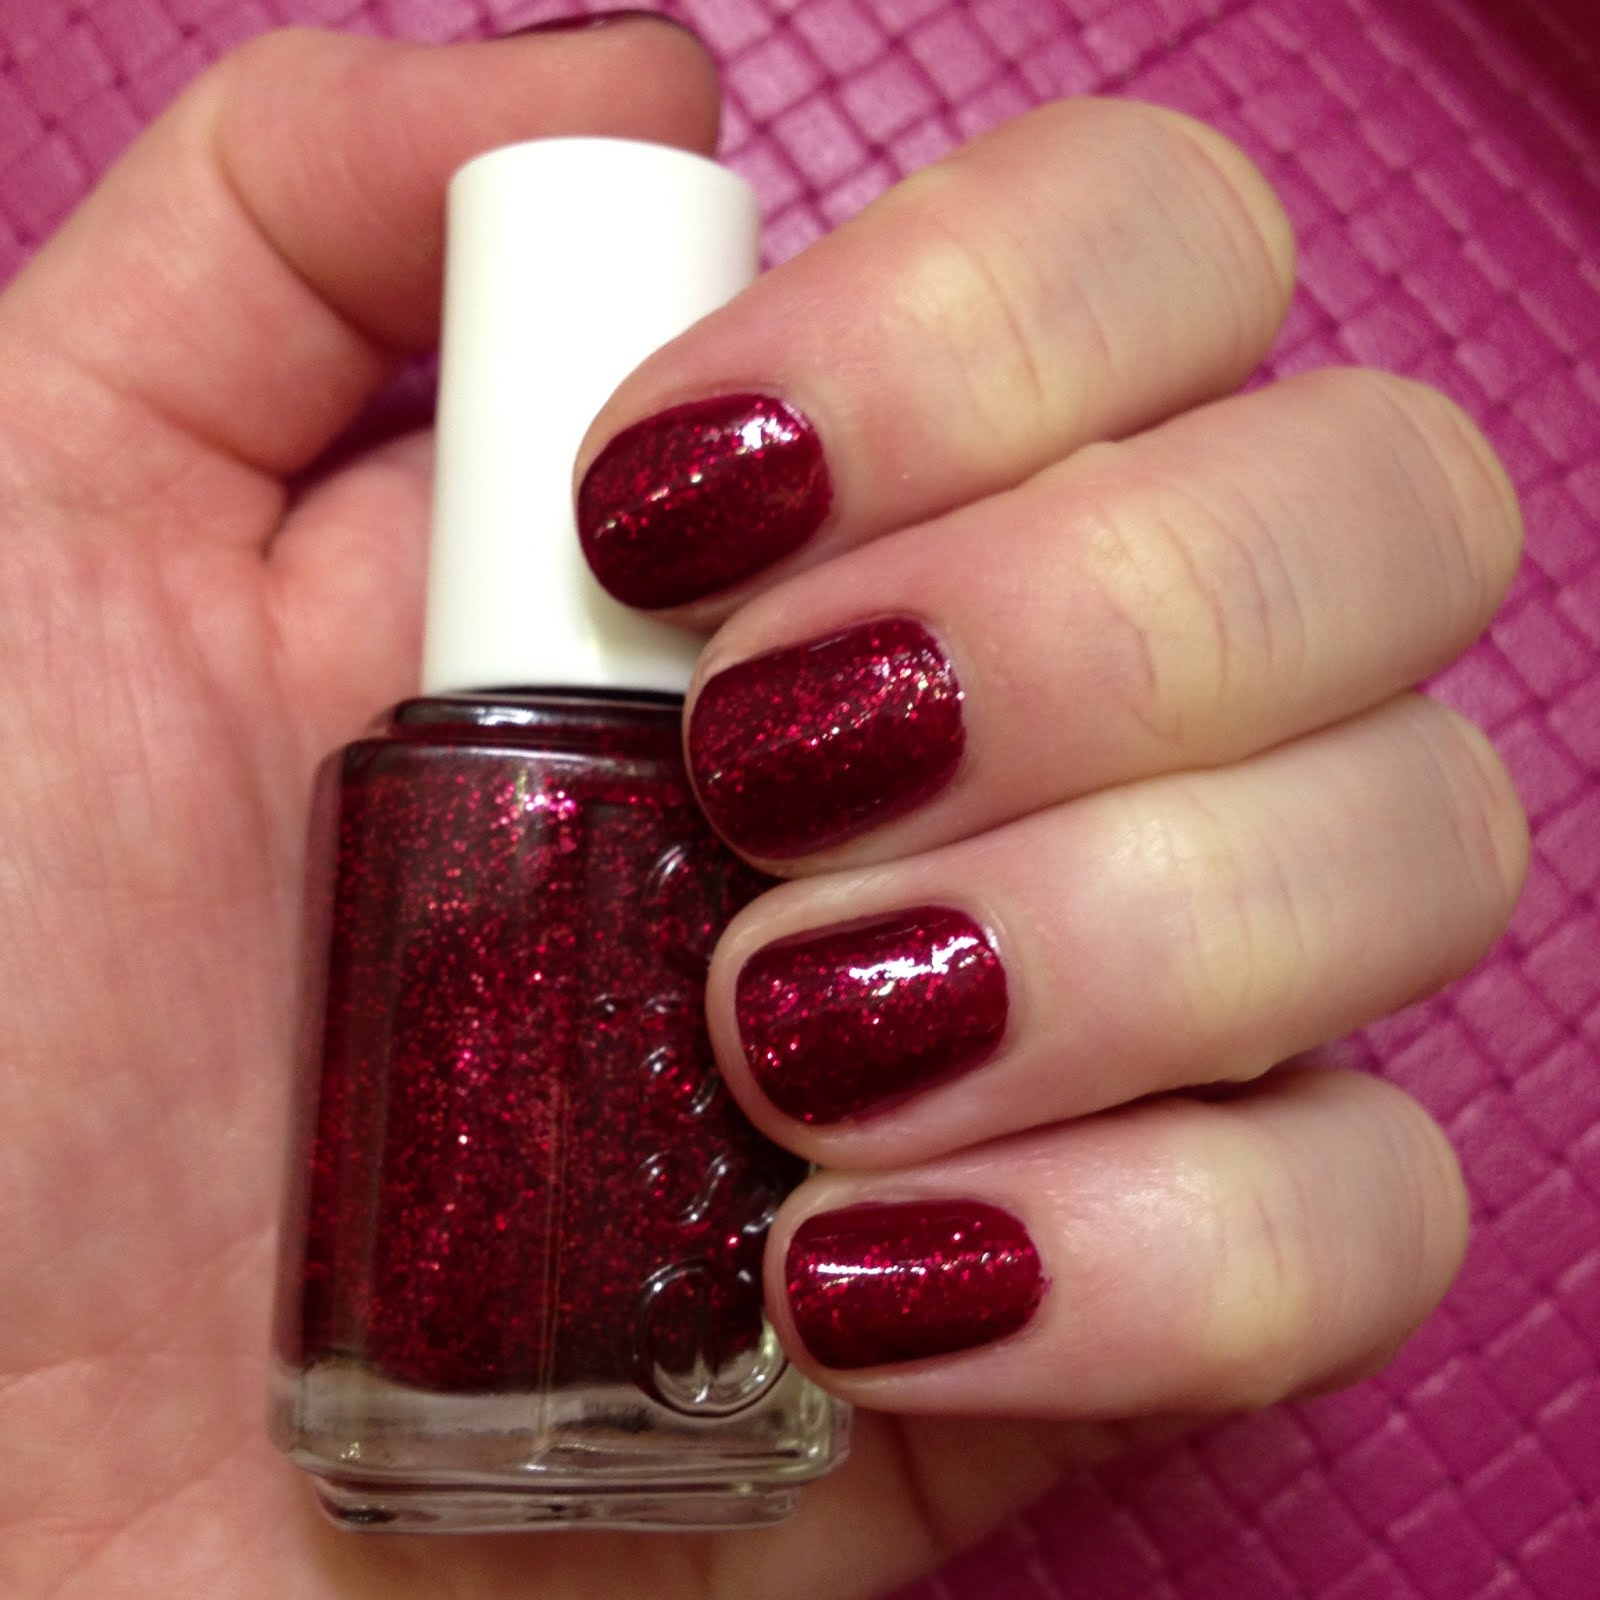 The Beauty Of Life: Salon And Spa Directory: The Essie